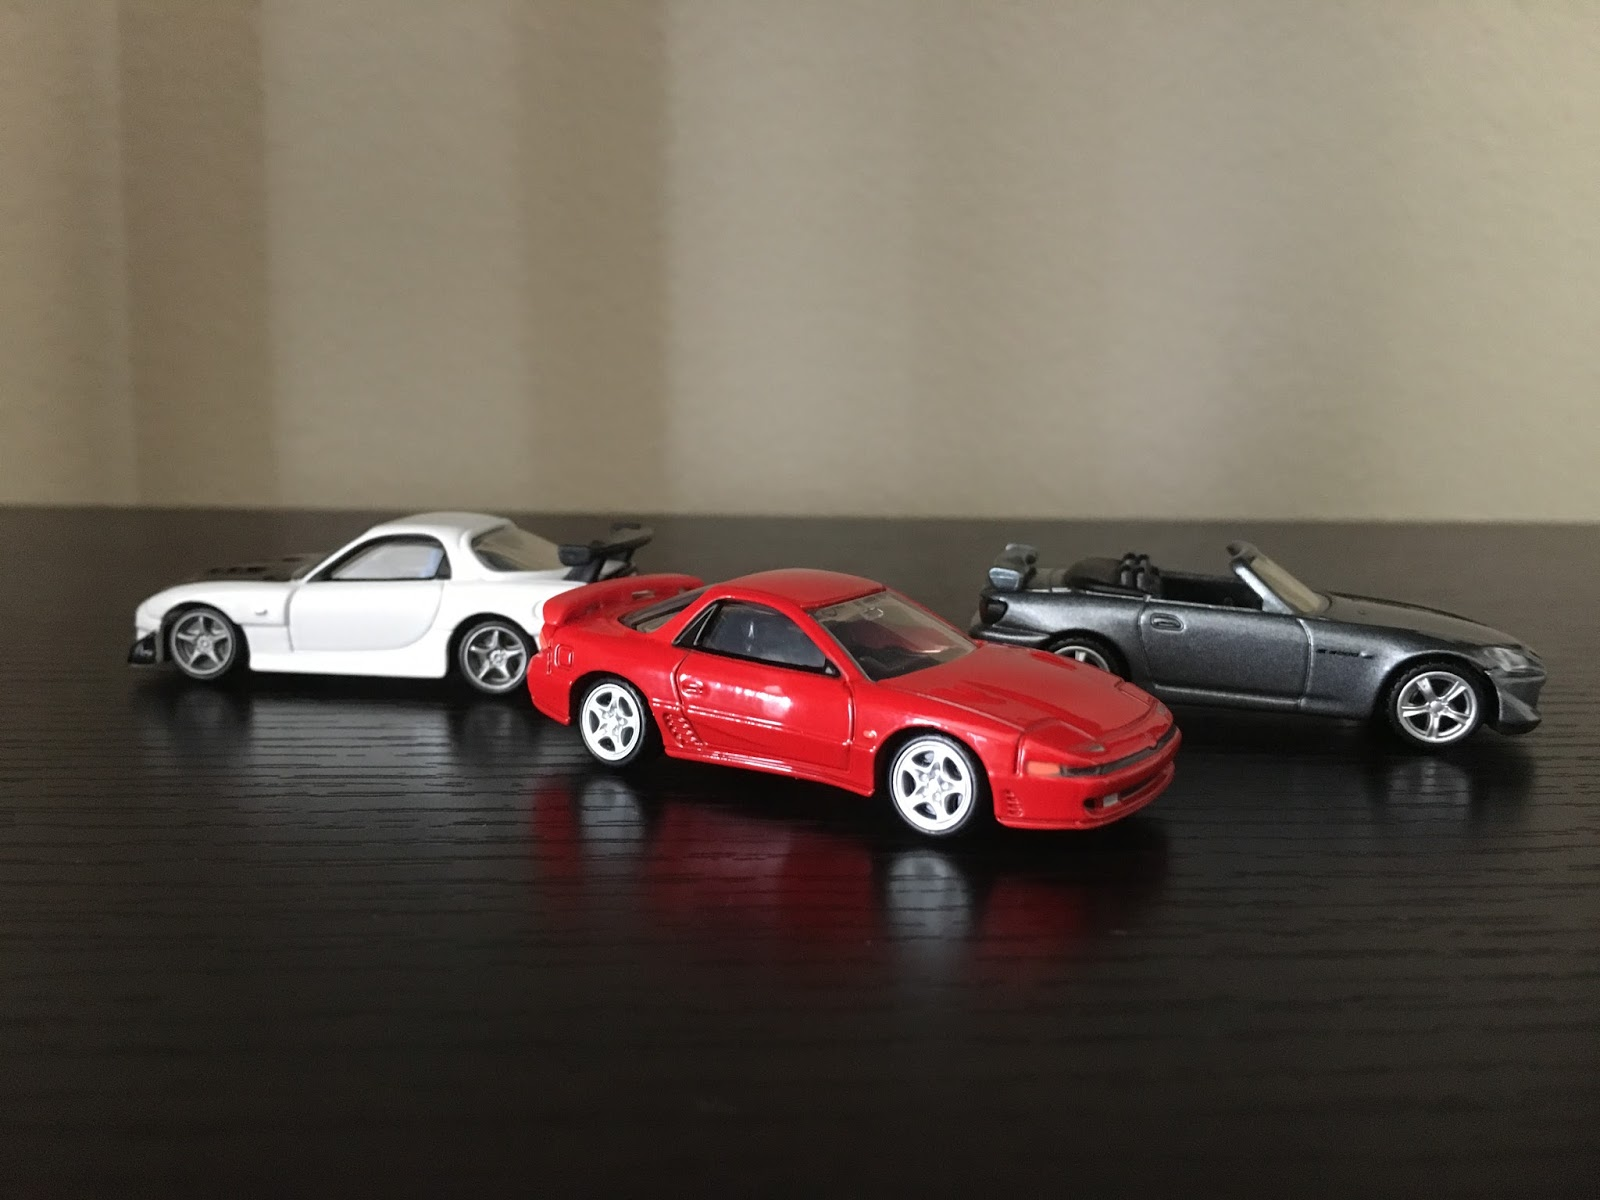 The Latest Tomica Premium Is A Whos Who Of Last Century Gems 18 Mitsubishi Gto Twin Turbo